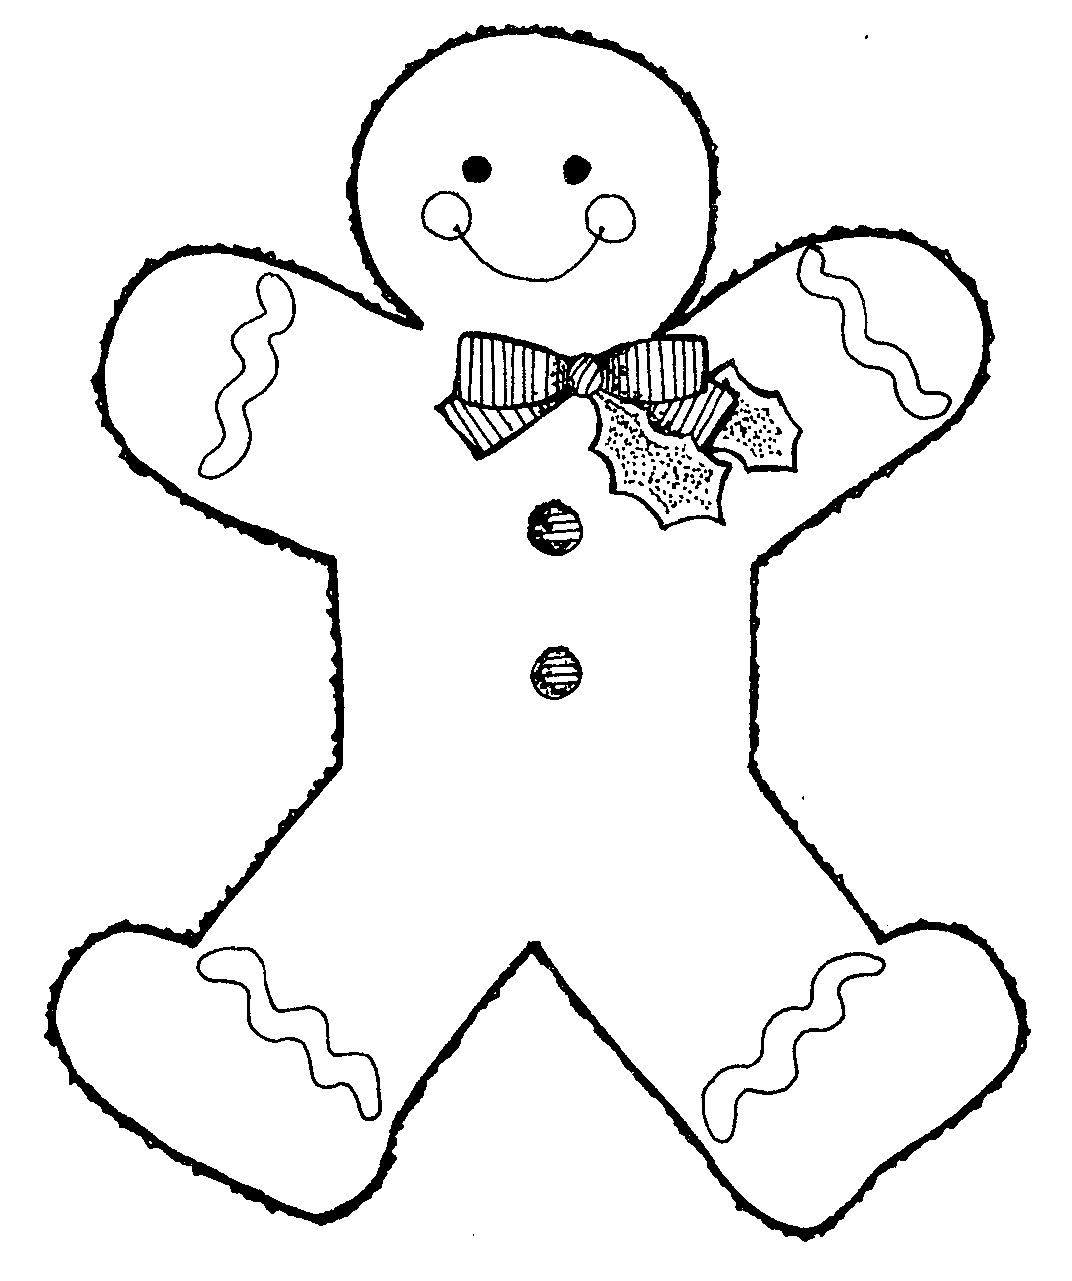 Gingerbread Man Outline Full Page - ClipArt Best